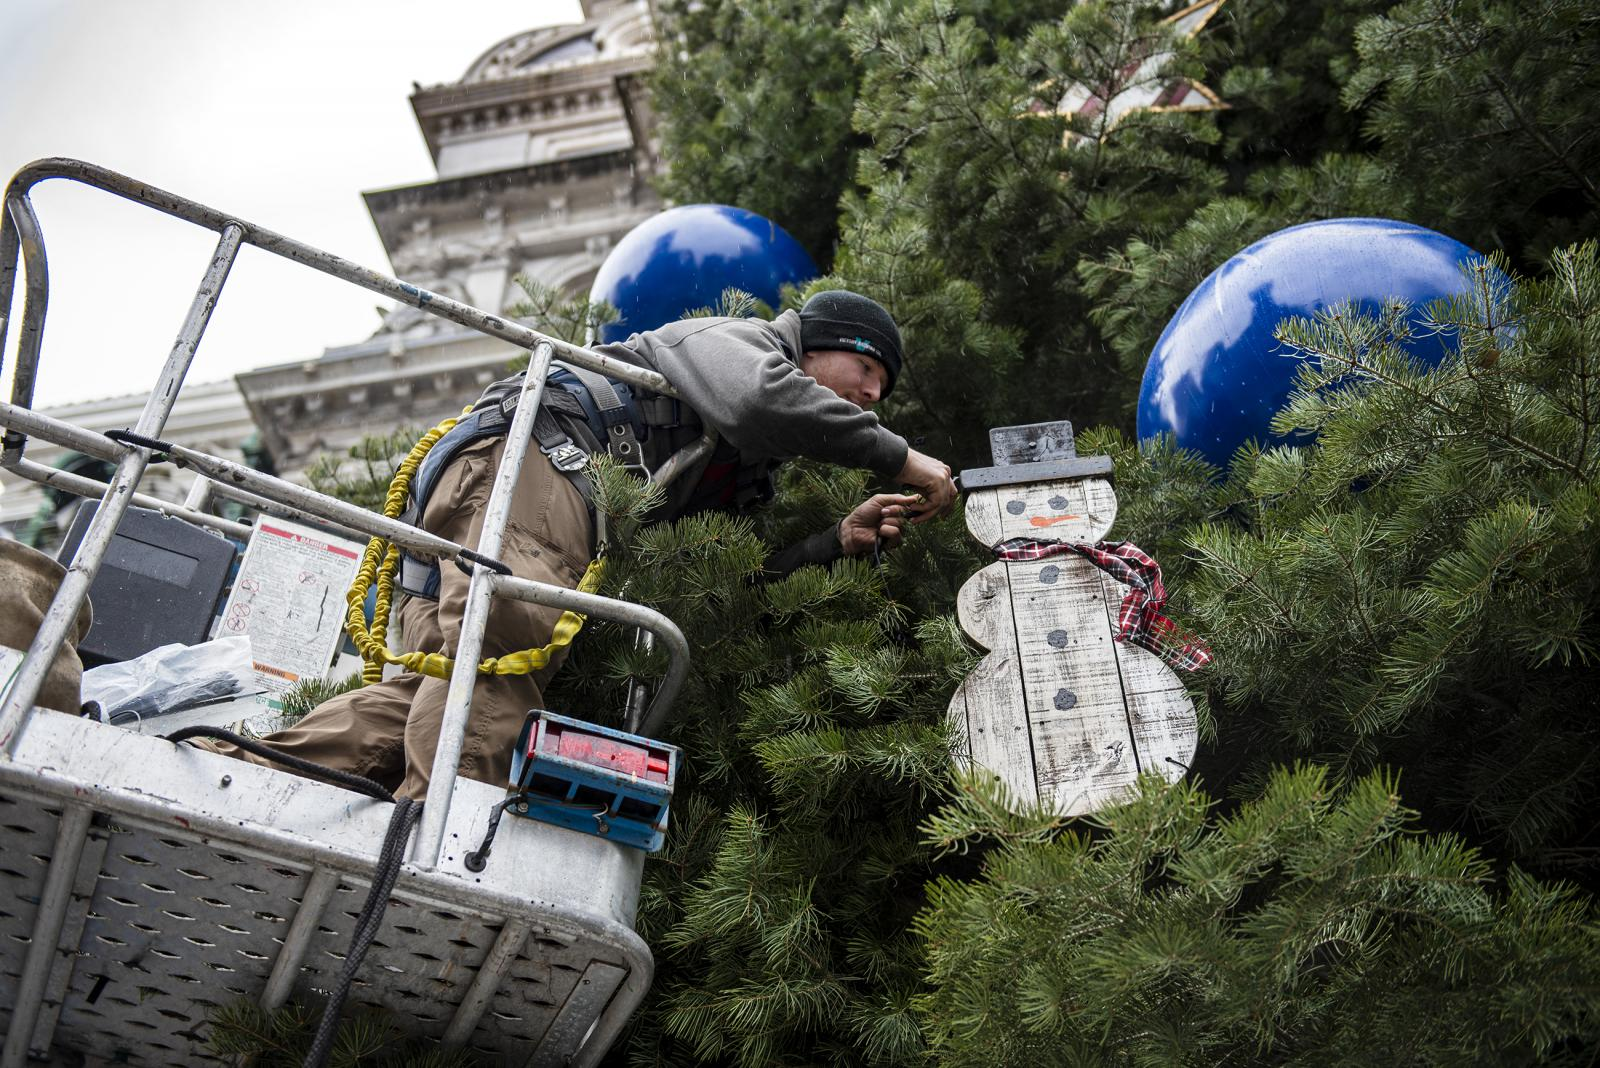 A crew from Proof Productions decorate the City's holiday tree at City Hall in Philadelphia, Pa, on Nov. 22, 2019. Ornaments includes colorful holiday balls, sleds, Christmas stockings, snowmen and snowflakes.